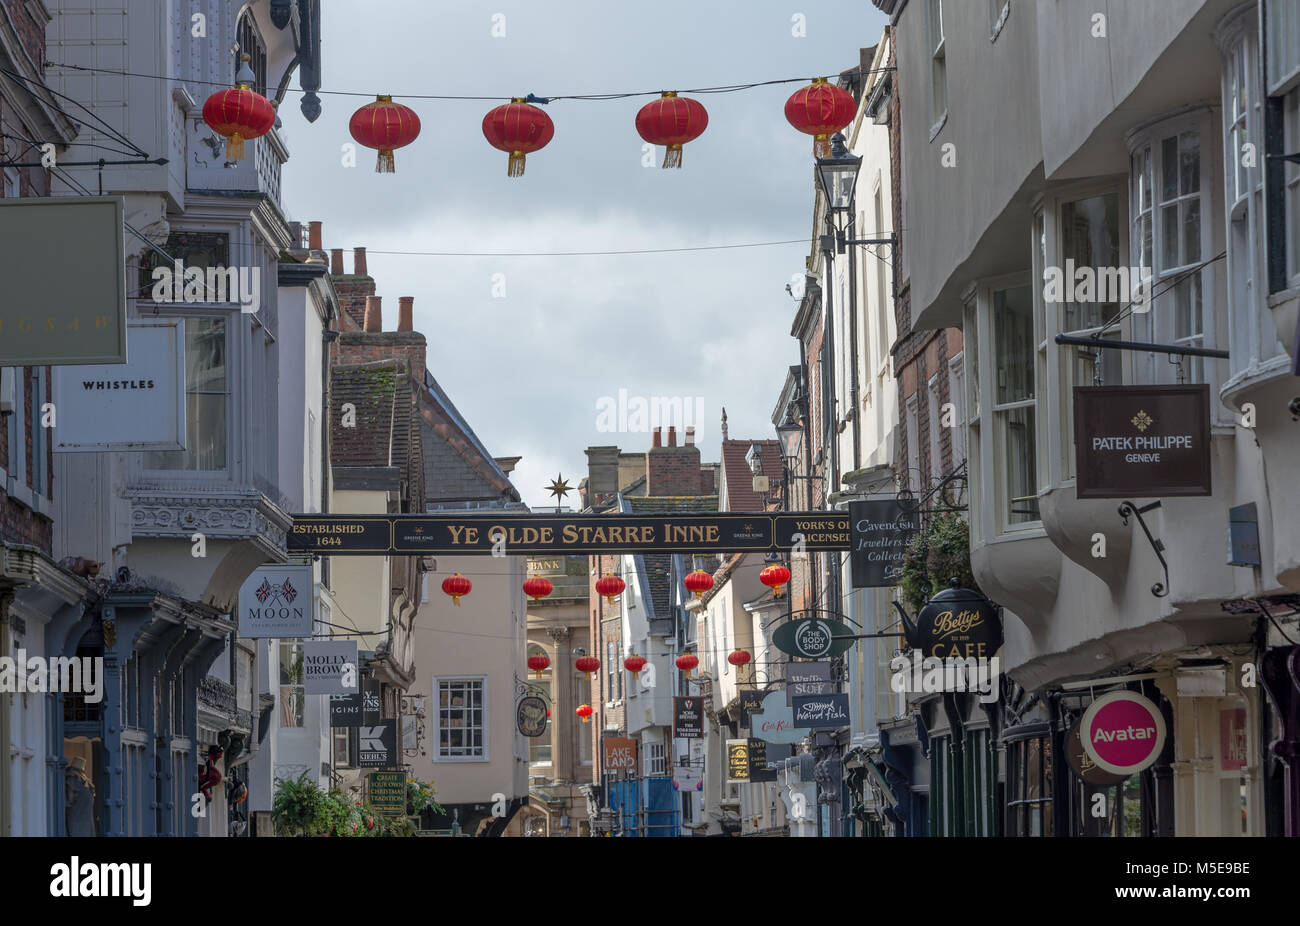 The famous Stonegate in York decorated with  lanterns for the Chinese New Year. Stock Photo